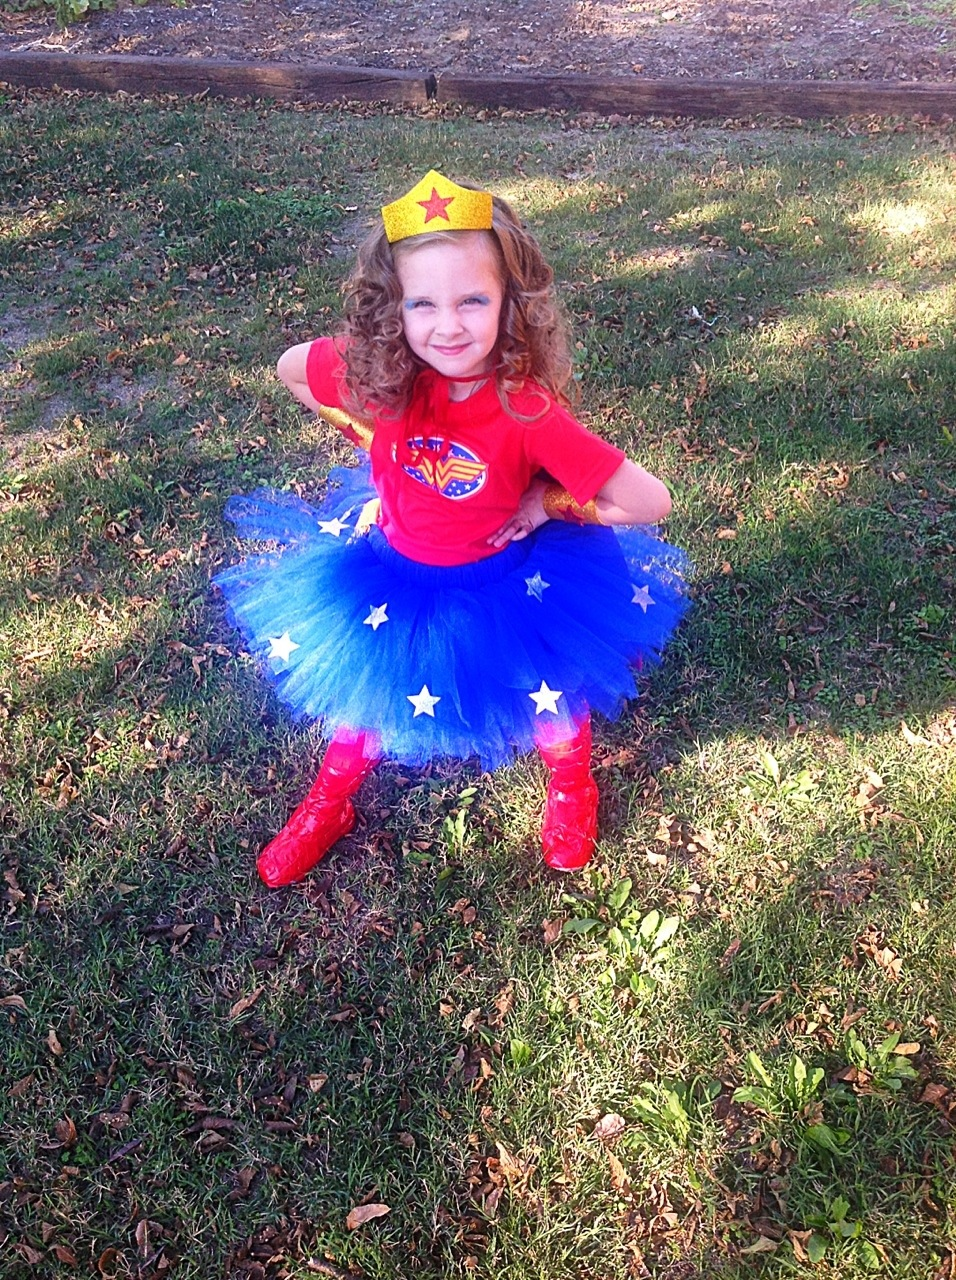 American girl wonder woman outfit-4233